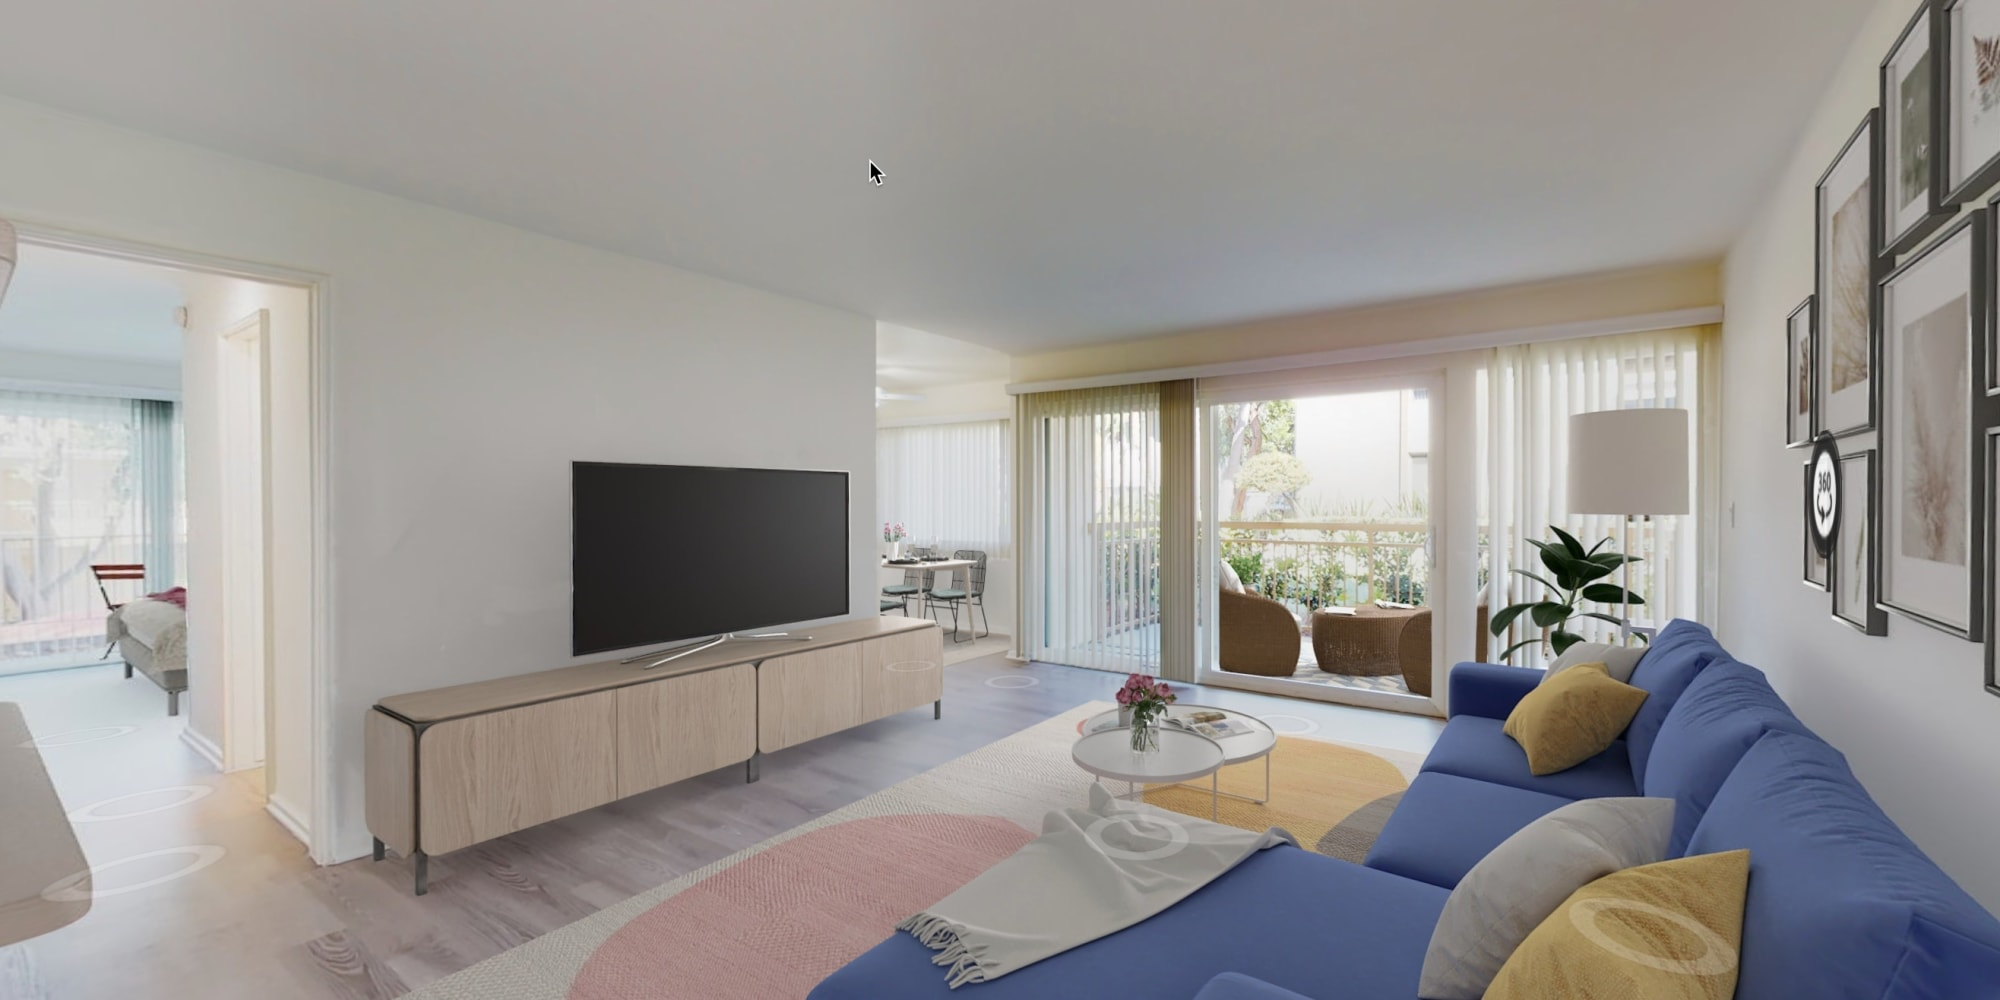 View a virtual tour of our 2 bedroom homes at West Park Village in Los Angeles, California